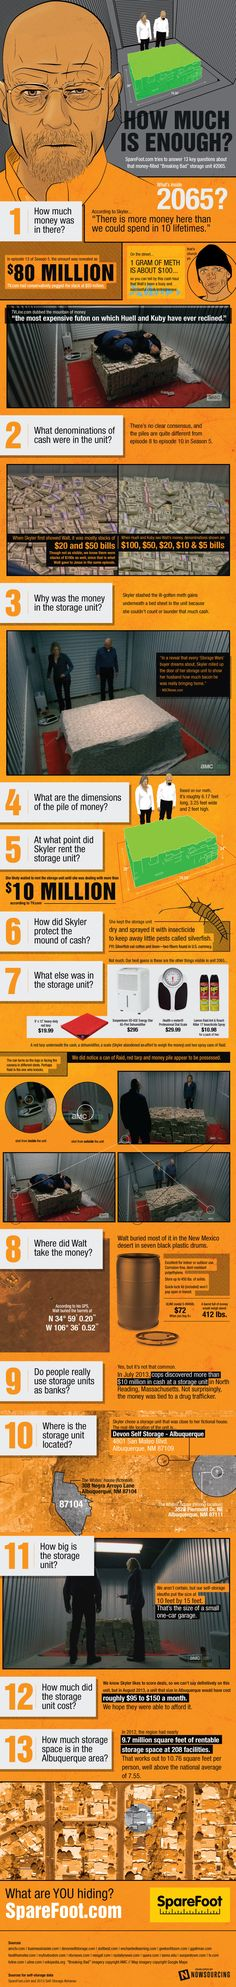 For those of you that are fans of Breaking Bad. This infographic provides a deeper look into 13 questions surrounding Walt and Skyler's storage unit in the show Breaking Bad. Breaking Bad Cast, Breaking Bad Series, Breking Bad, Self Storage, Great Tv Shows, Data Visualization, Best Shows Ever, Best Tv, B & B